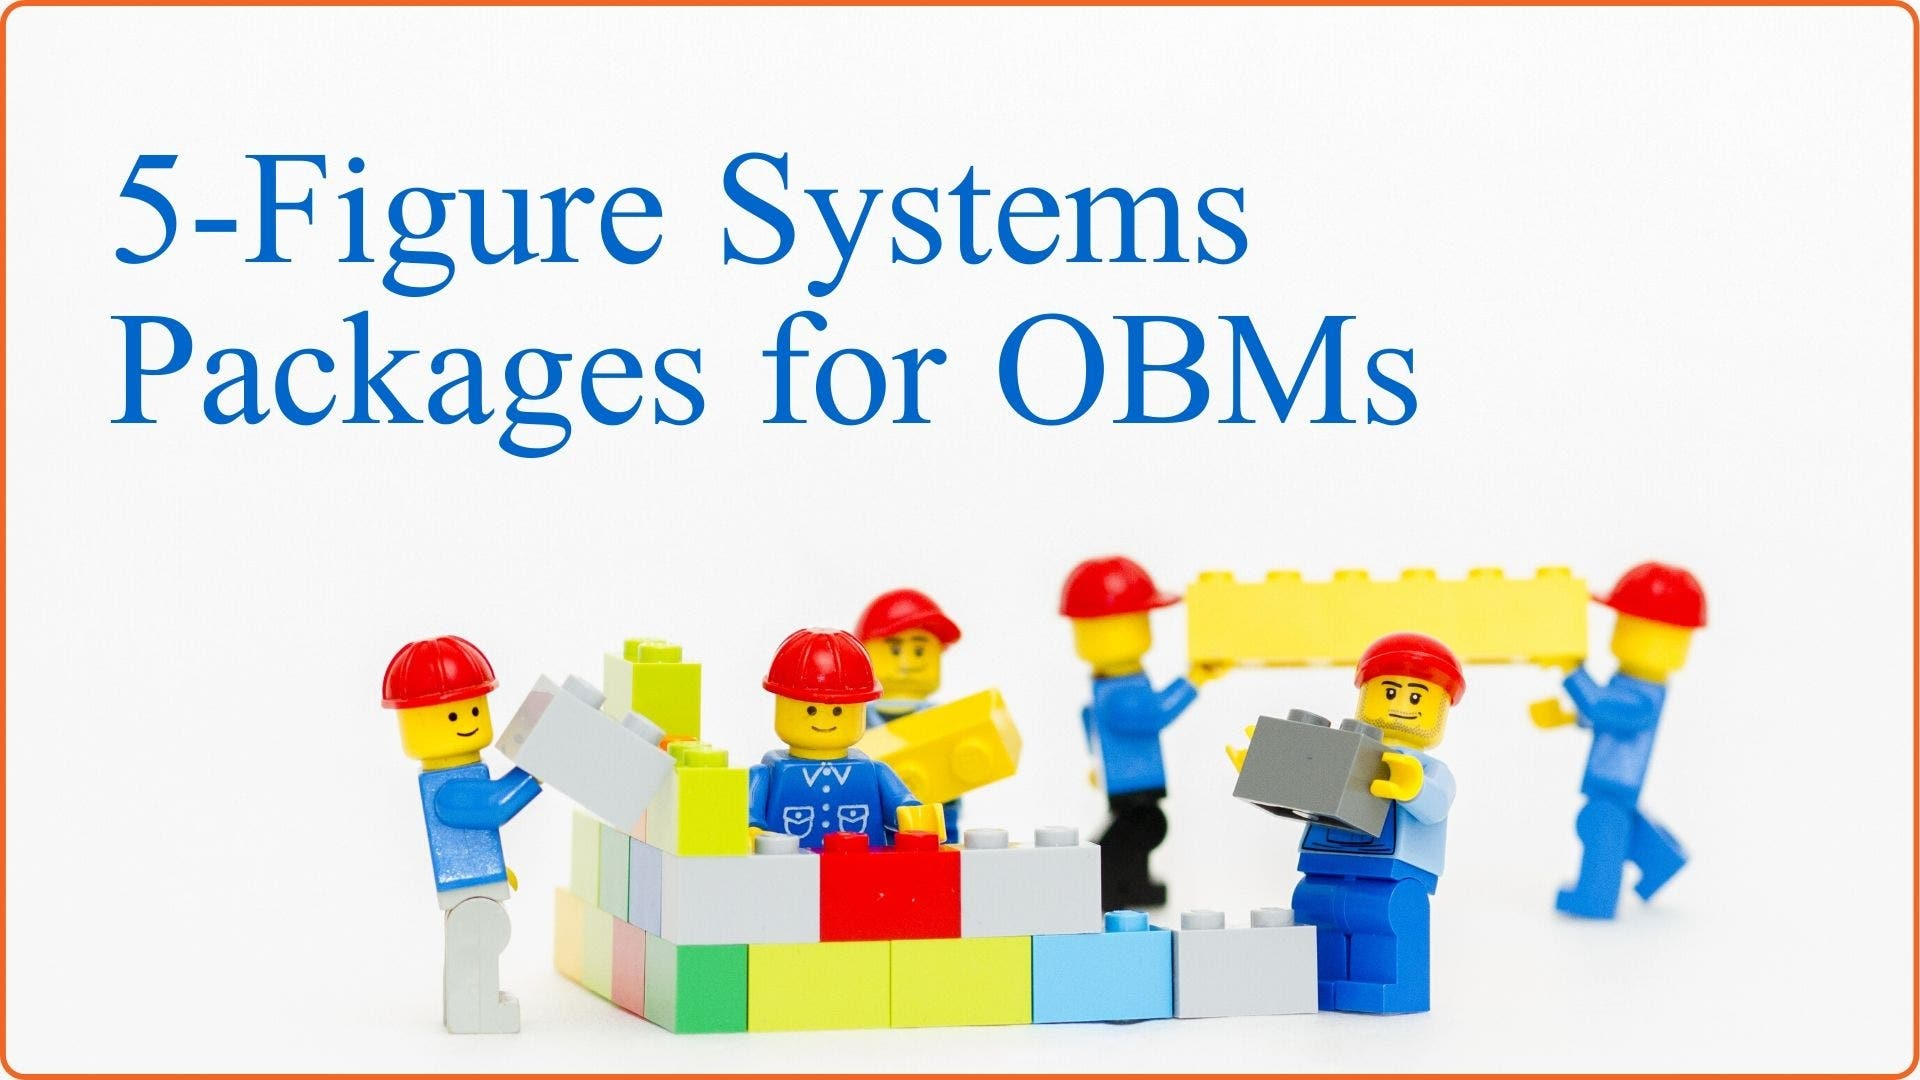 5-Figure Systems Packages for OBMs